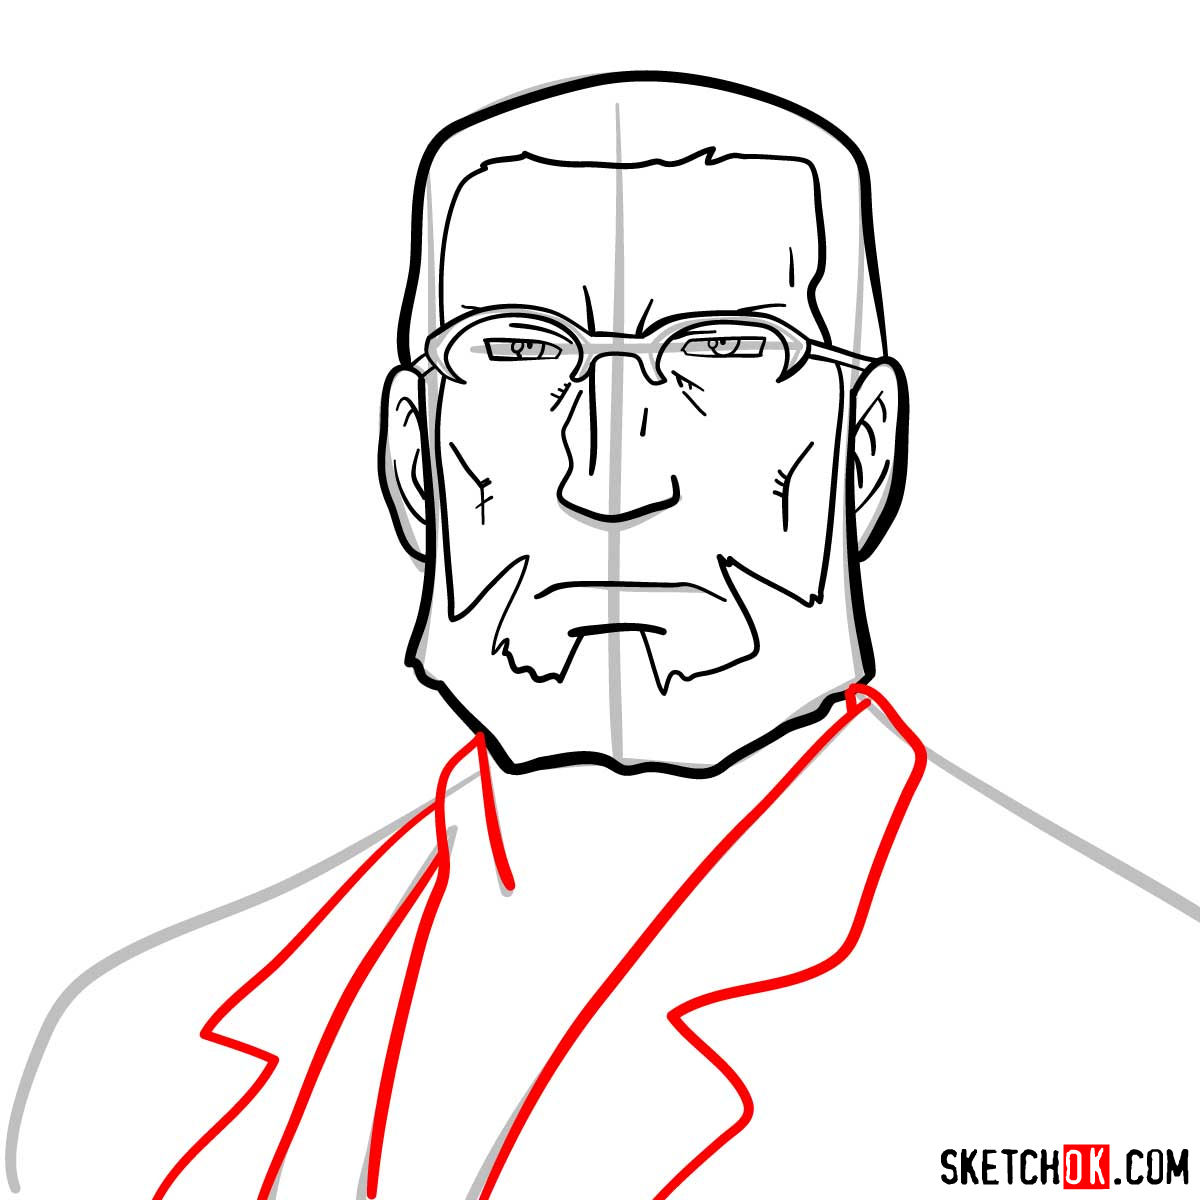 How to draw Van Hohenheim from Fullmetal Alchemist anime - step 07